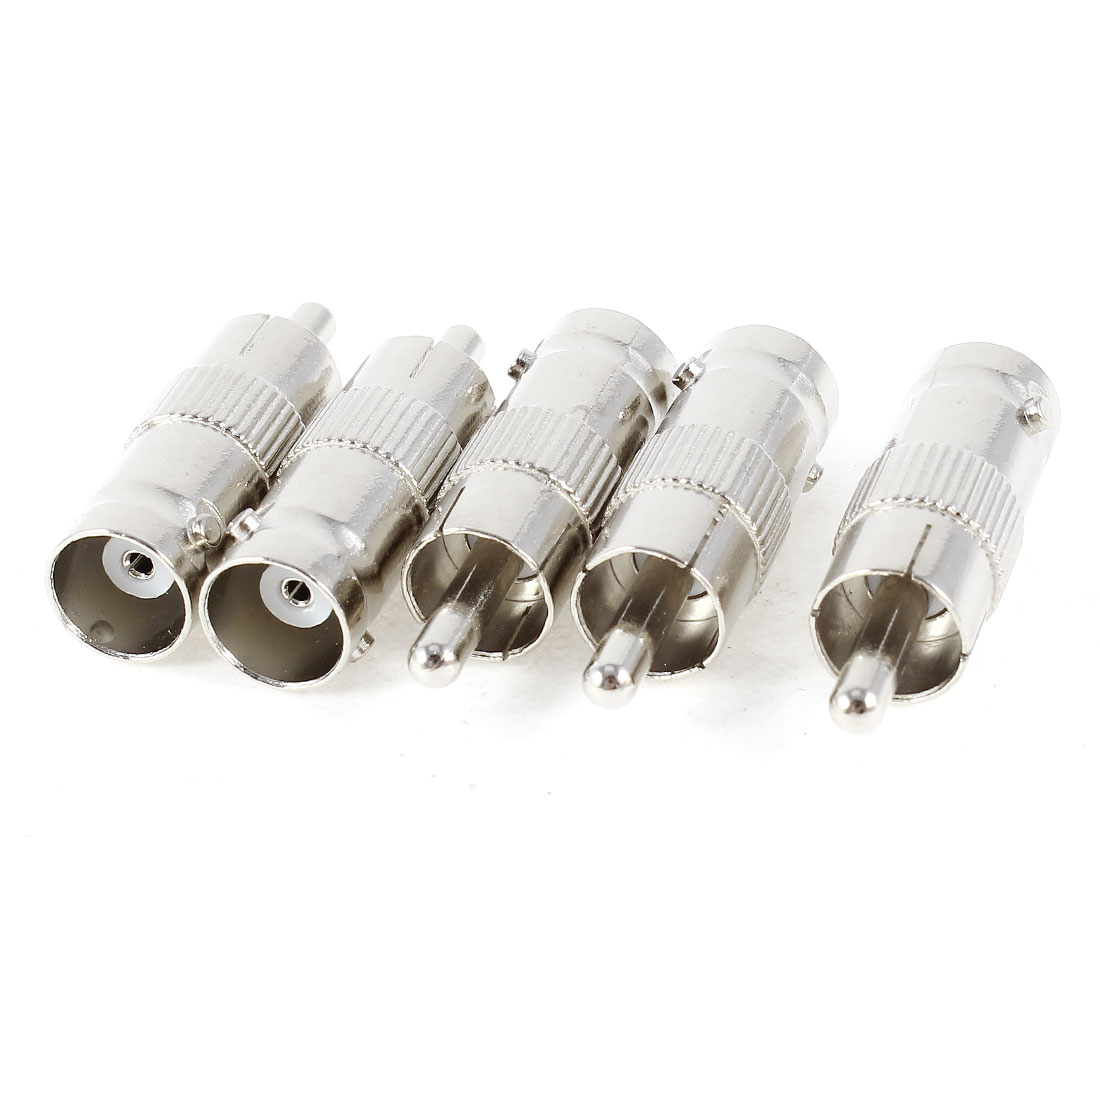 5 Pcs BNC Female to RCA Male AV Straight Adapter Connector Silver Tone